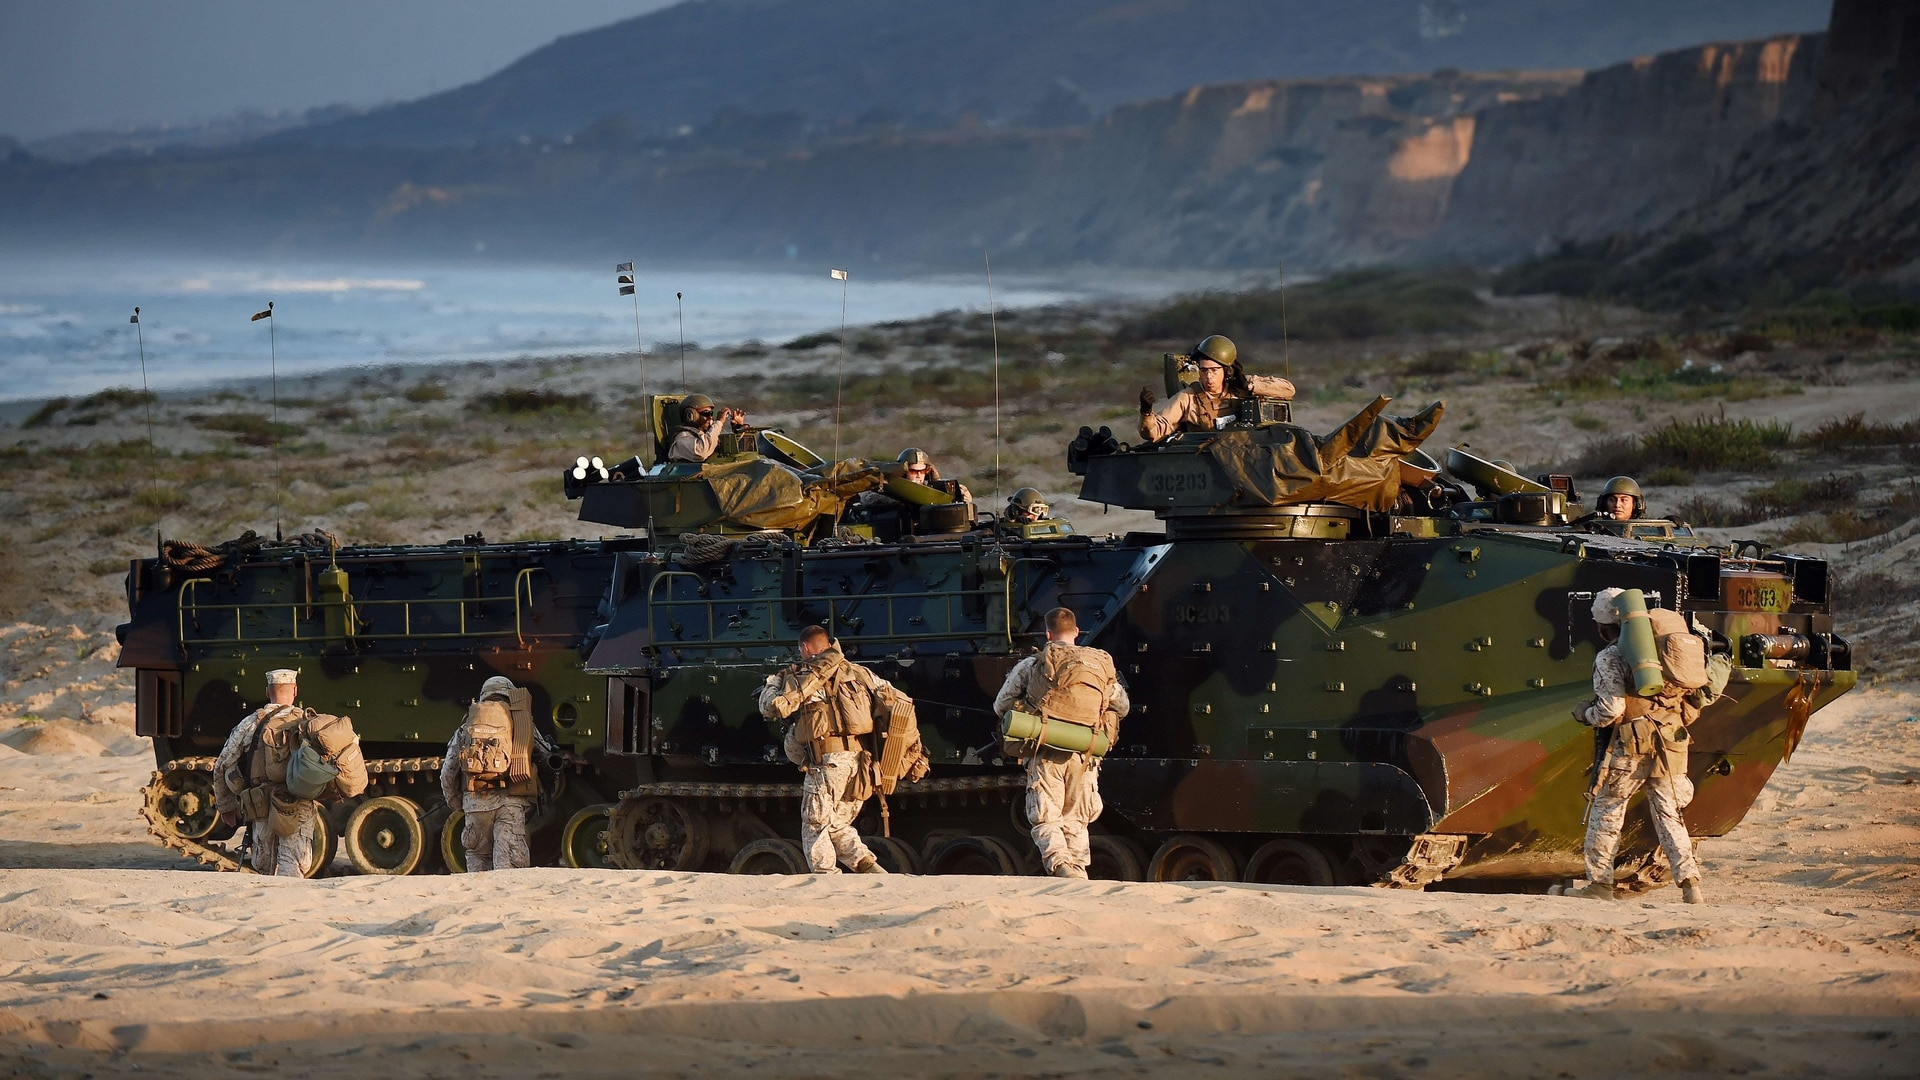 U.S. Marines take positions during an amphibious landing operation with the Japan Maritime Self-Defense Force at the Dawn Blitz 2015 exercise at Camp Pendleton, California, in September 2015. (Mark Ralston/AFP/Getty Images)